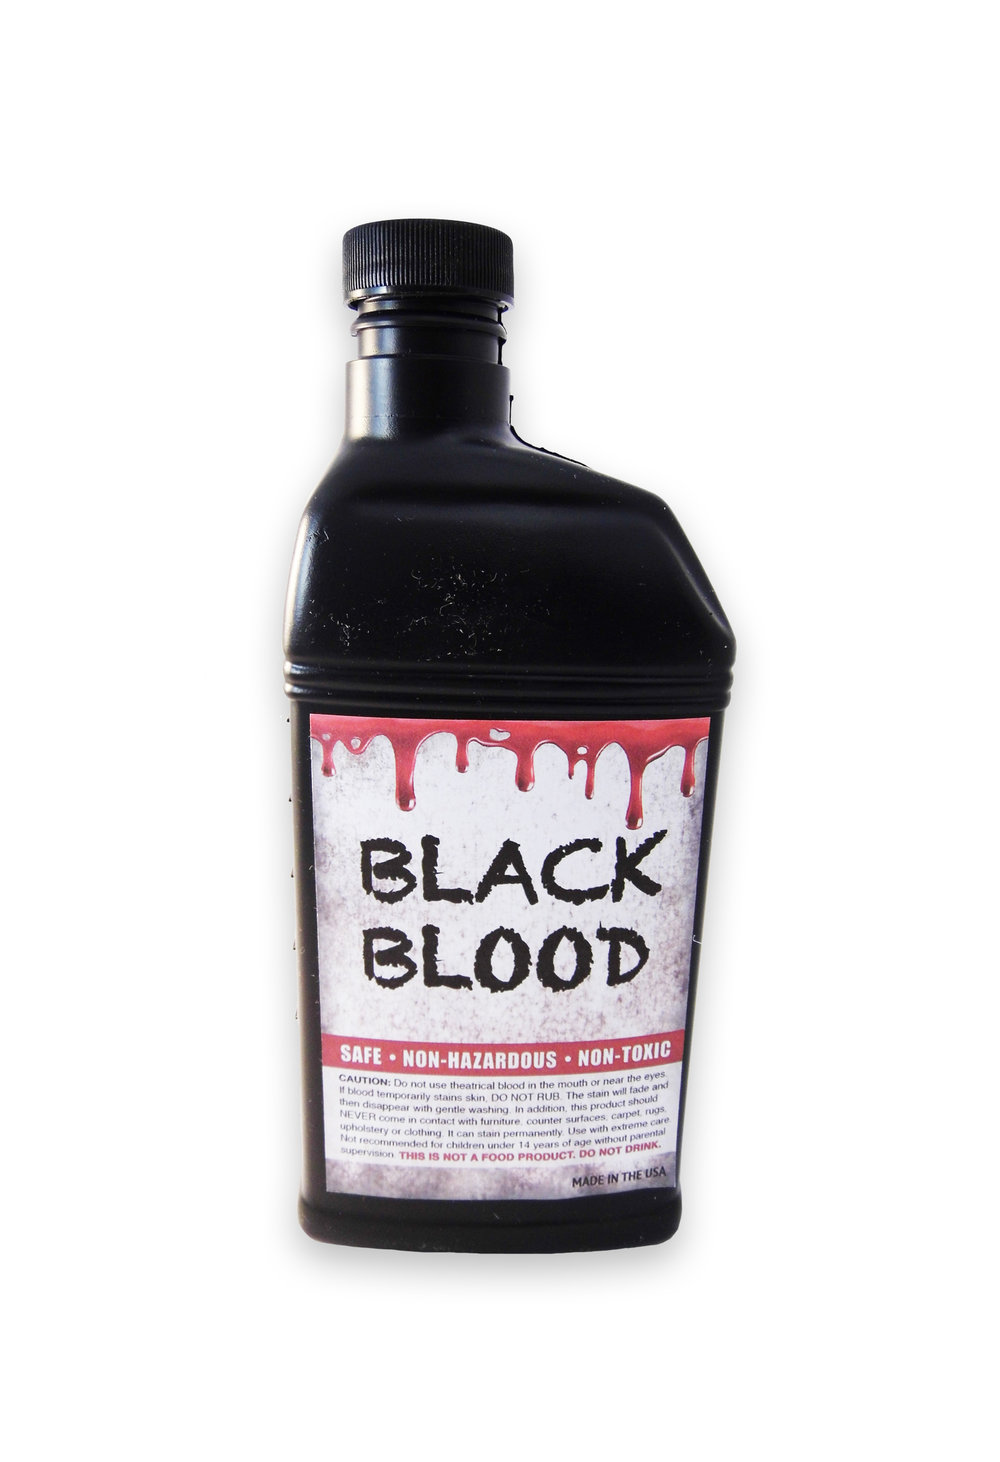 BLZ-P  ZOMBIE BLACK BLOOD  Available in Pints Only           -  Made In USA